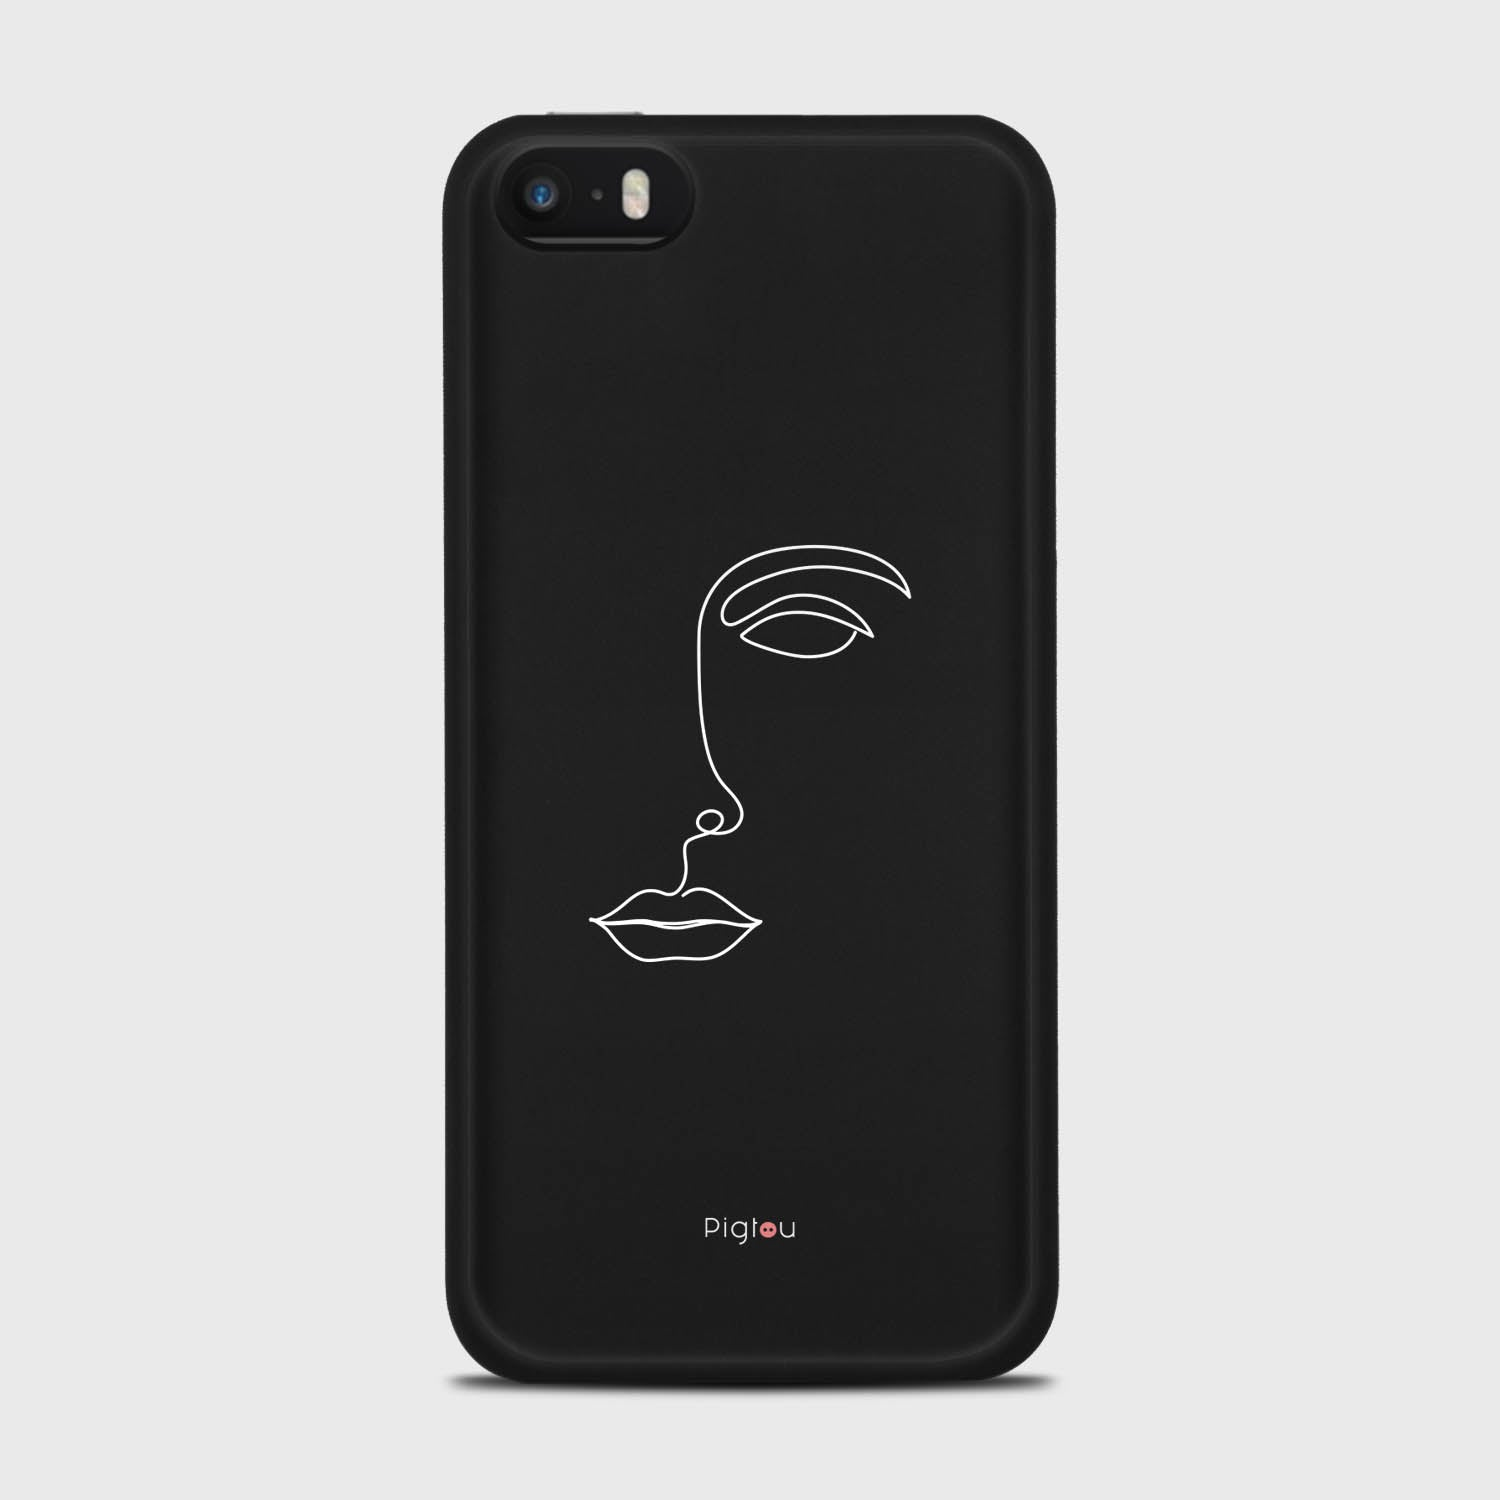 SILHOUETTE FACE iPhone 5s cases | Pigtou